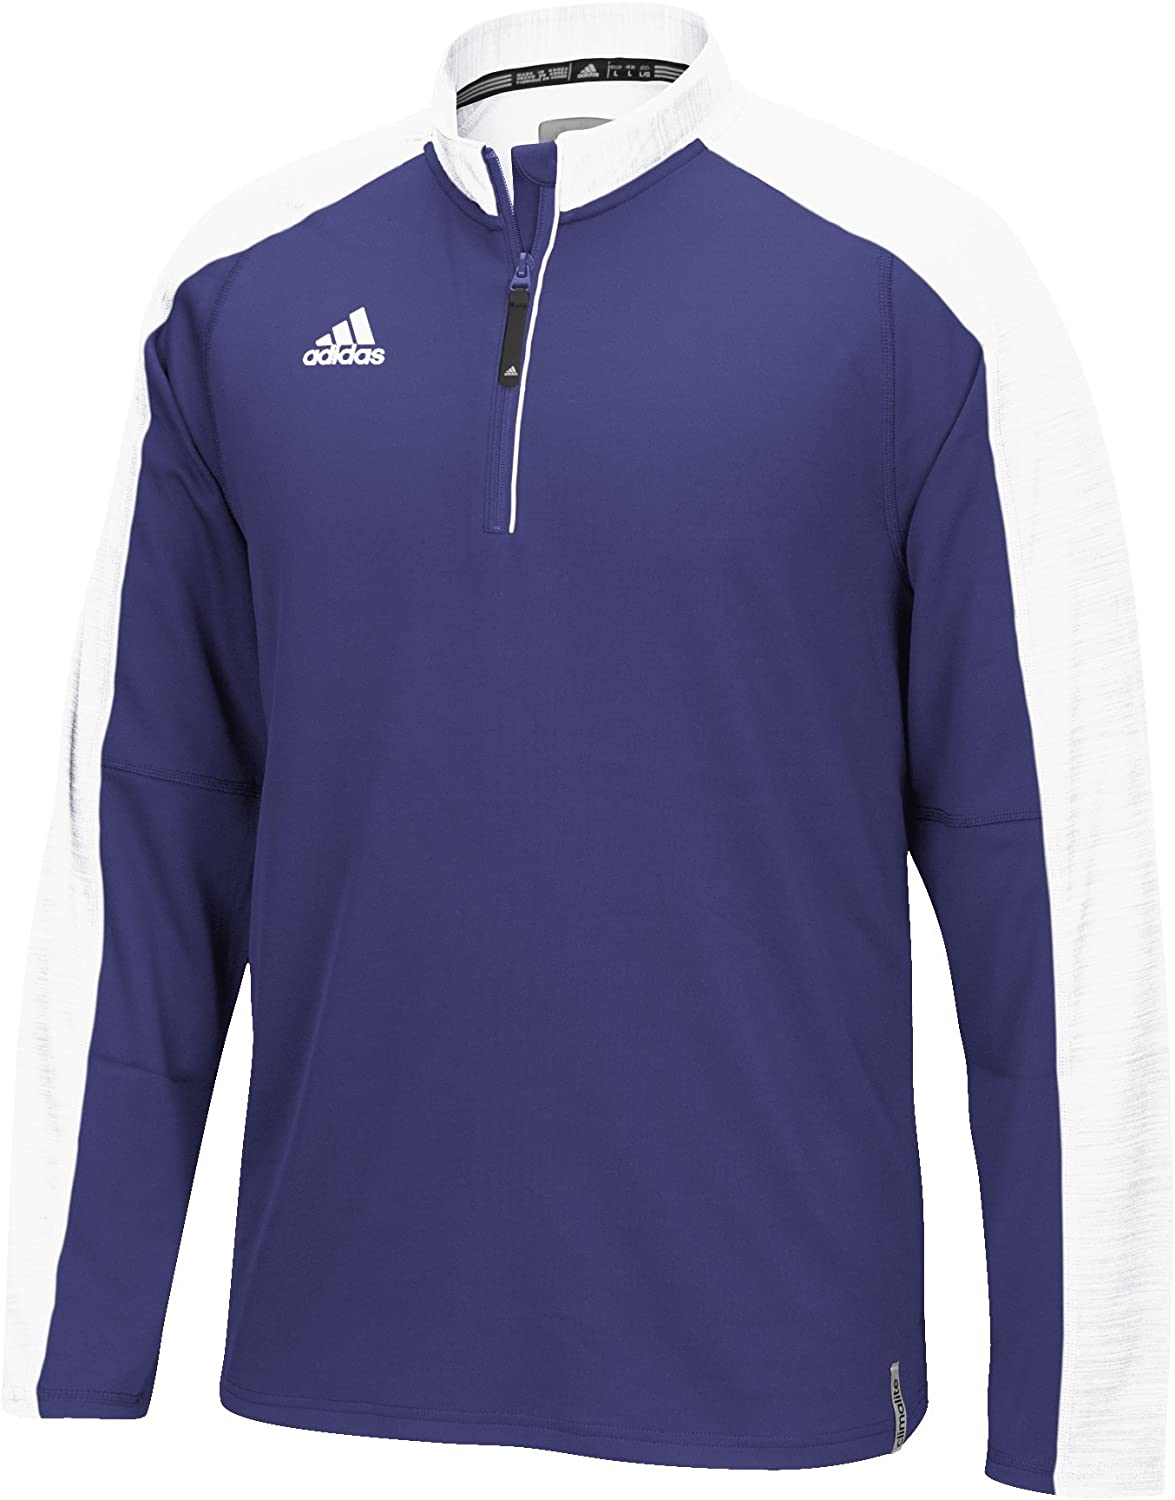 Adidas CLIMALite Knit TRACK Running Top and 18 similar items